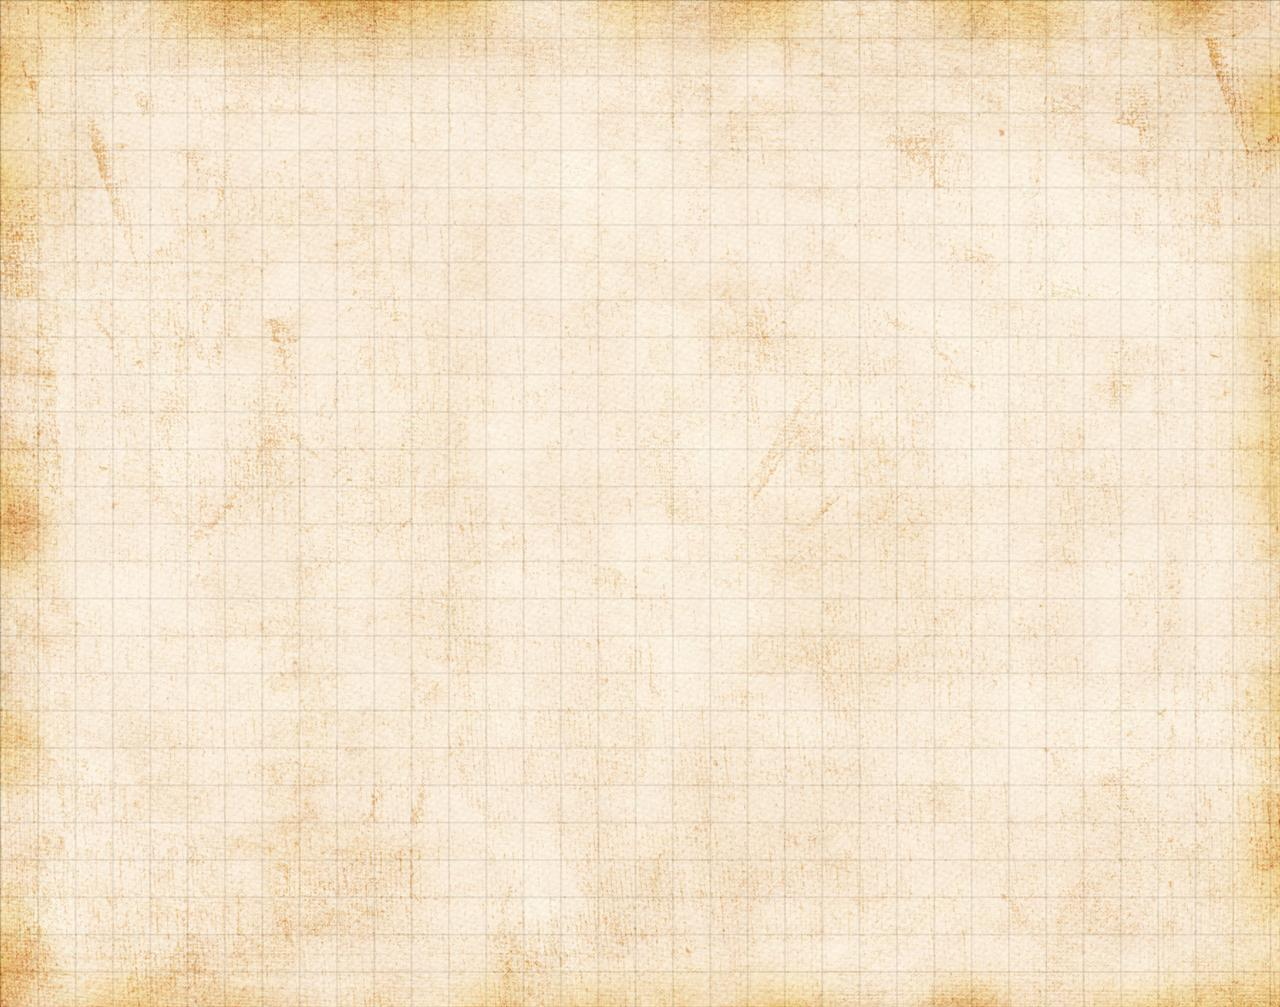 Worn Graph Paper Backgrounds